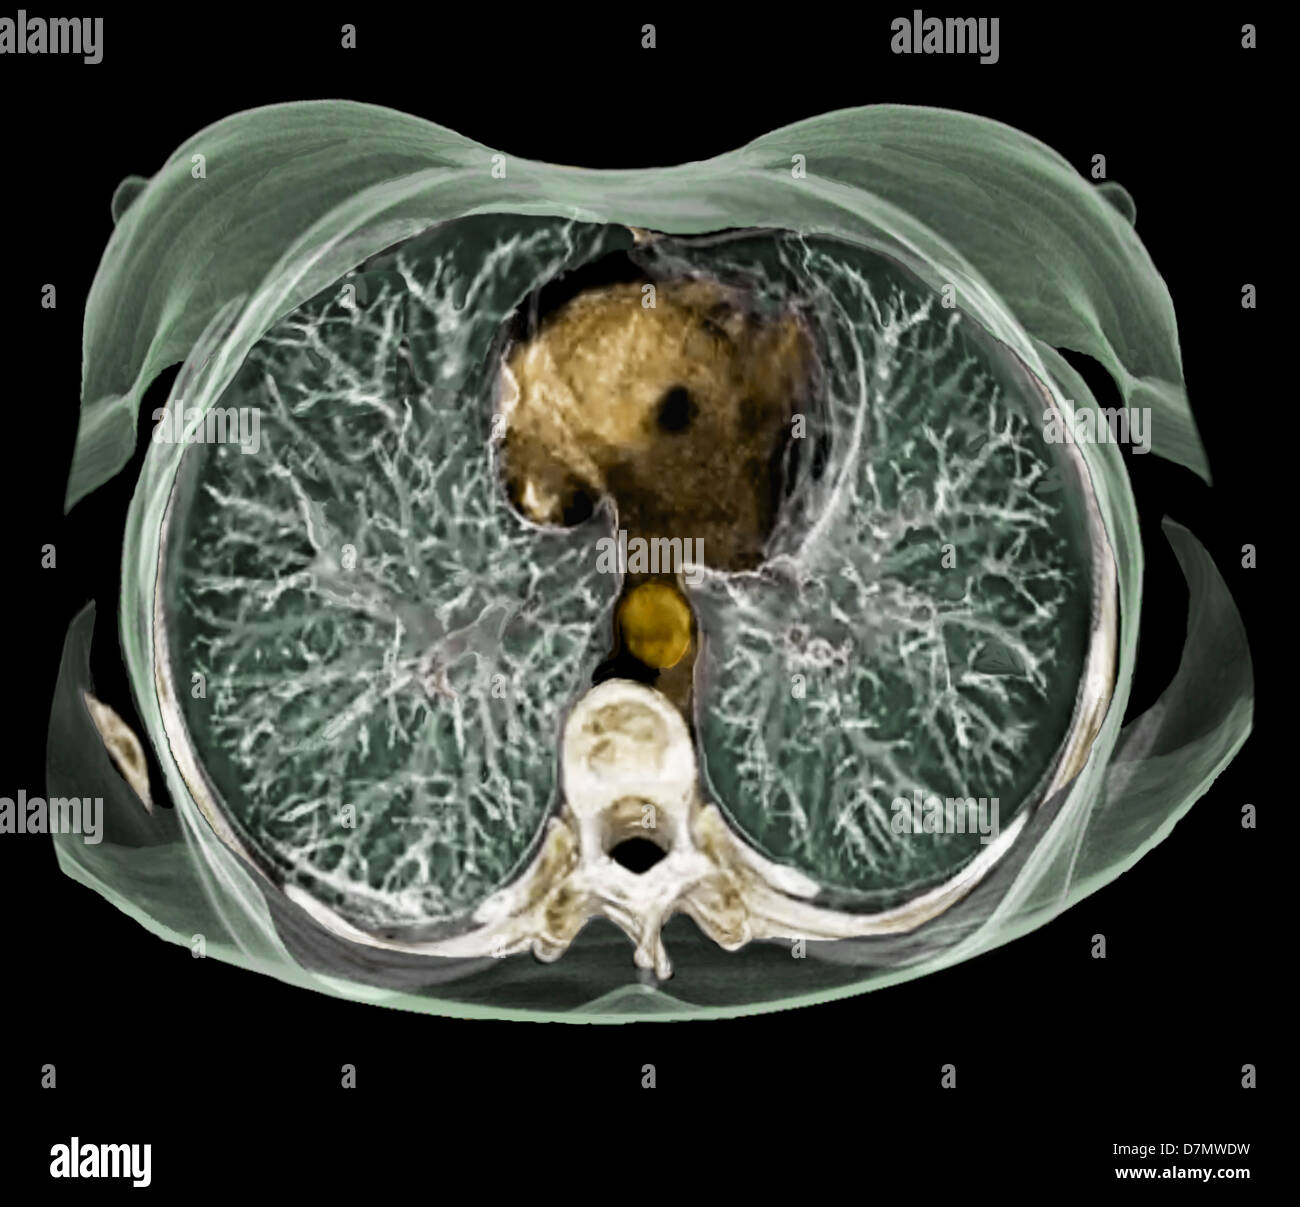 Ct Chest Stockfotos & Ct Chest Bilder - Alamy